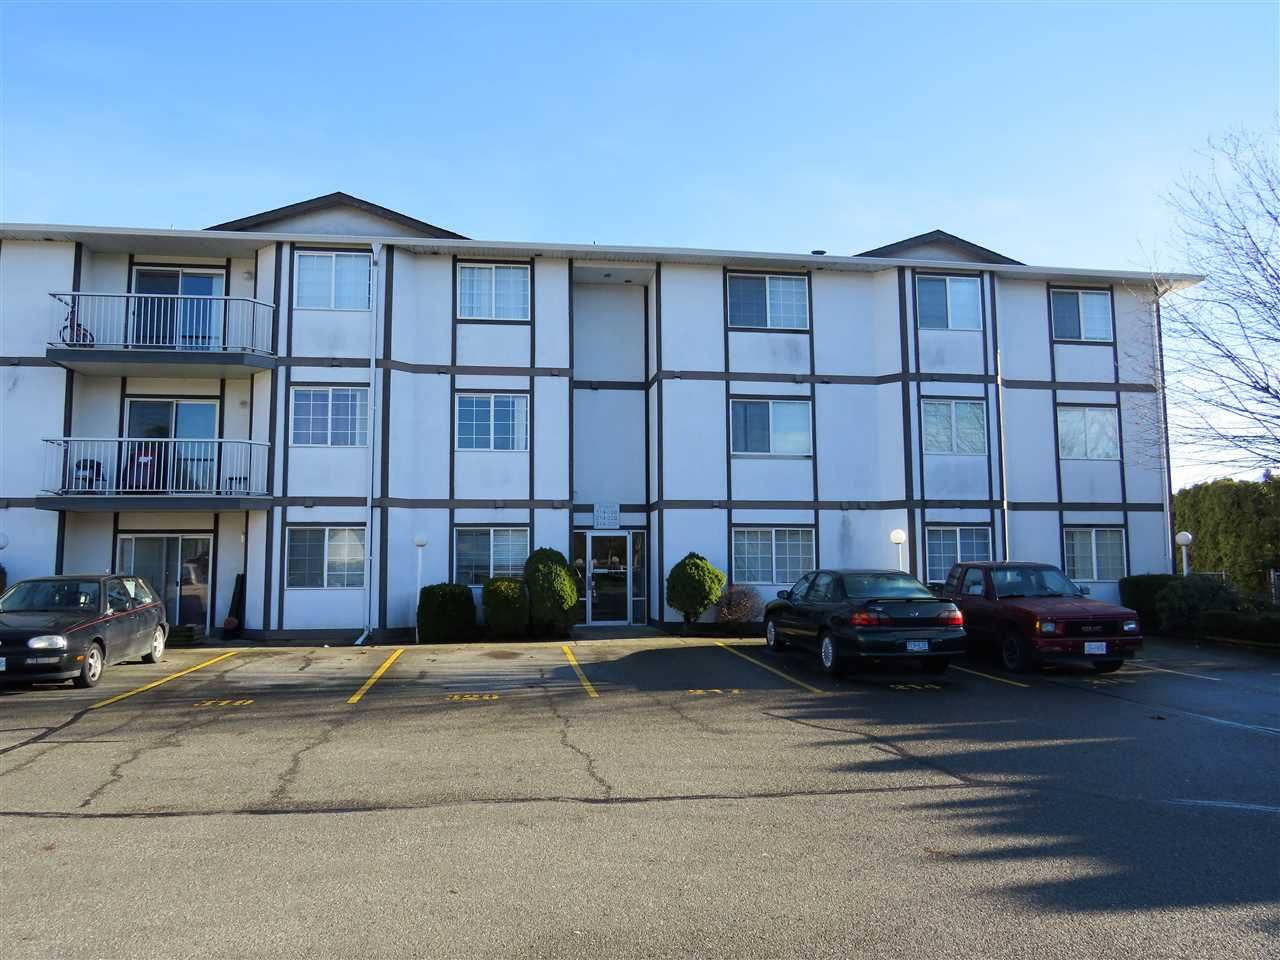 """Main Photo: 218 45669 MCINTOSH Drive in Chilliwack: Chilliwack W Young-Well Condo for sale in """"McIntosh Village"""" : MLS®# R2331709"""